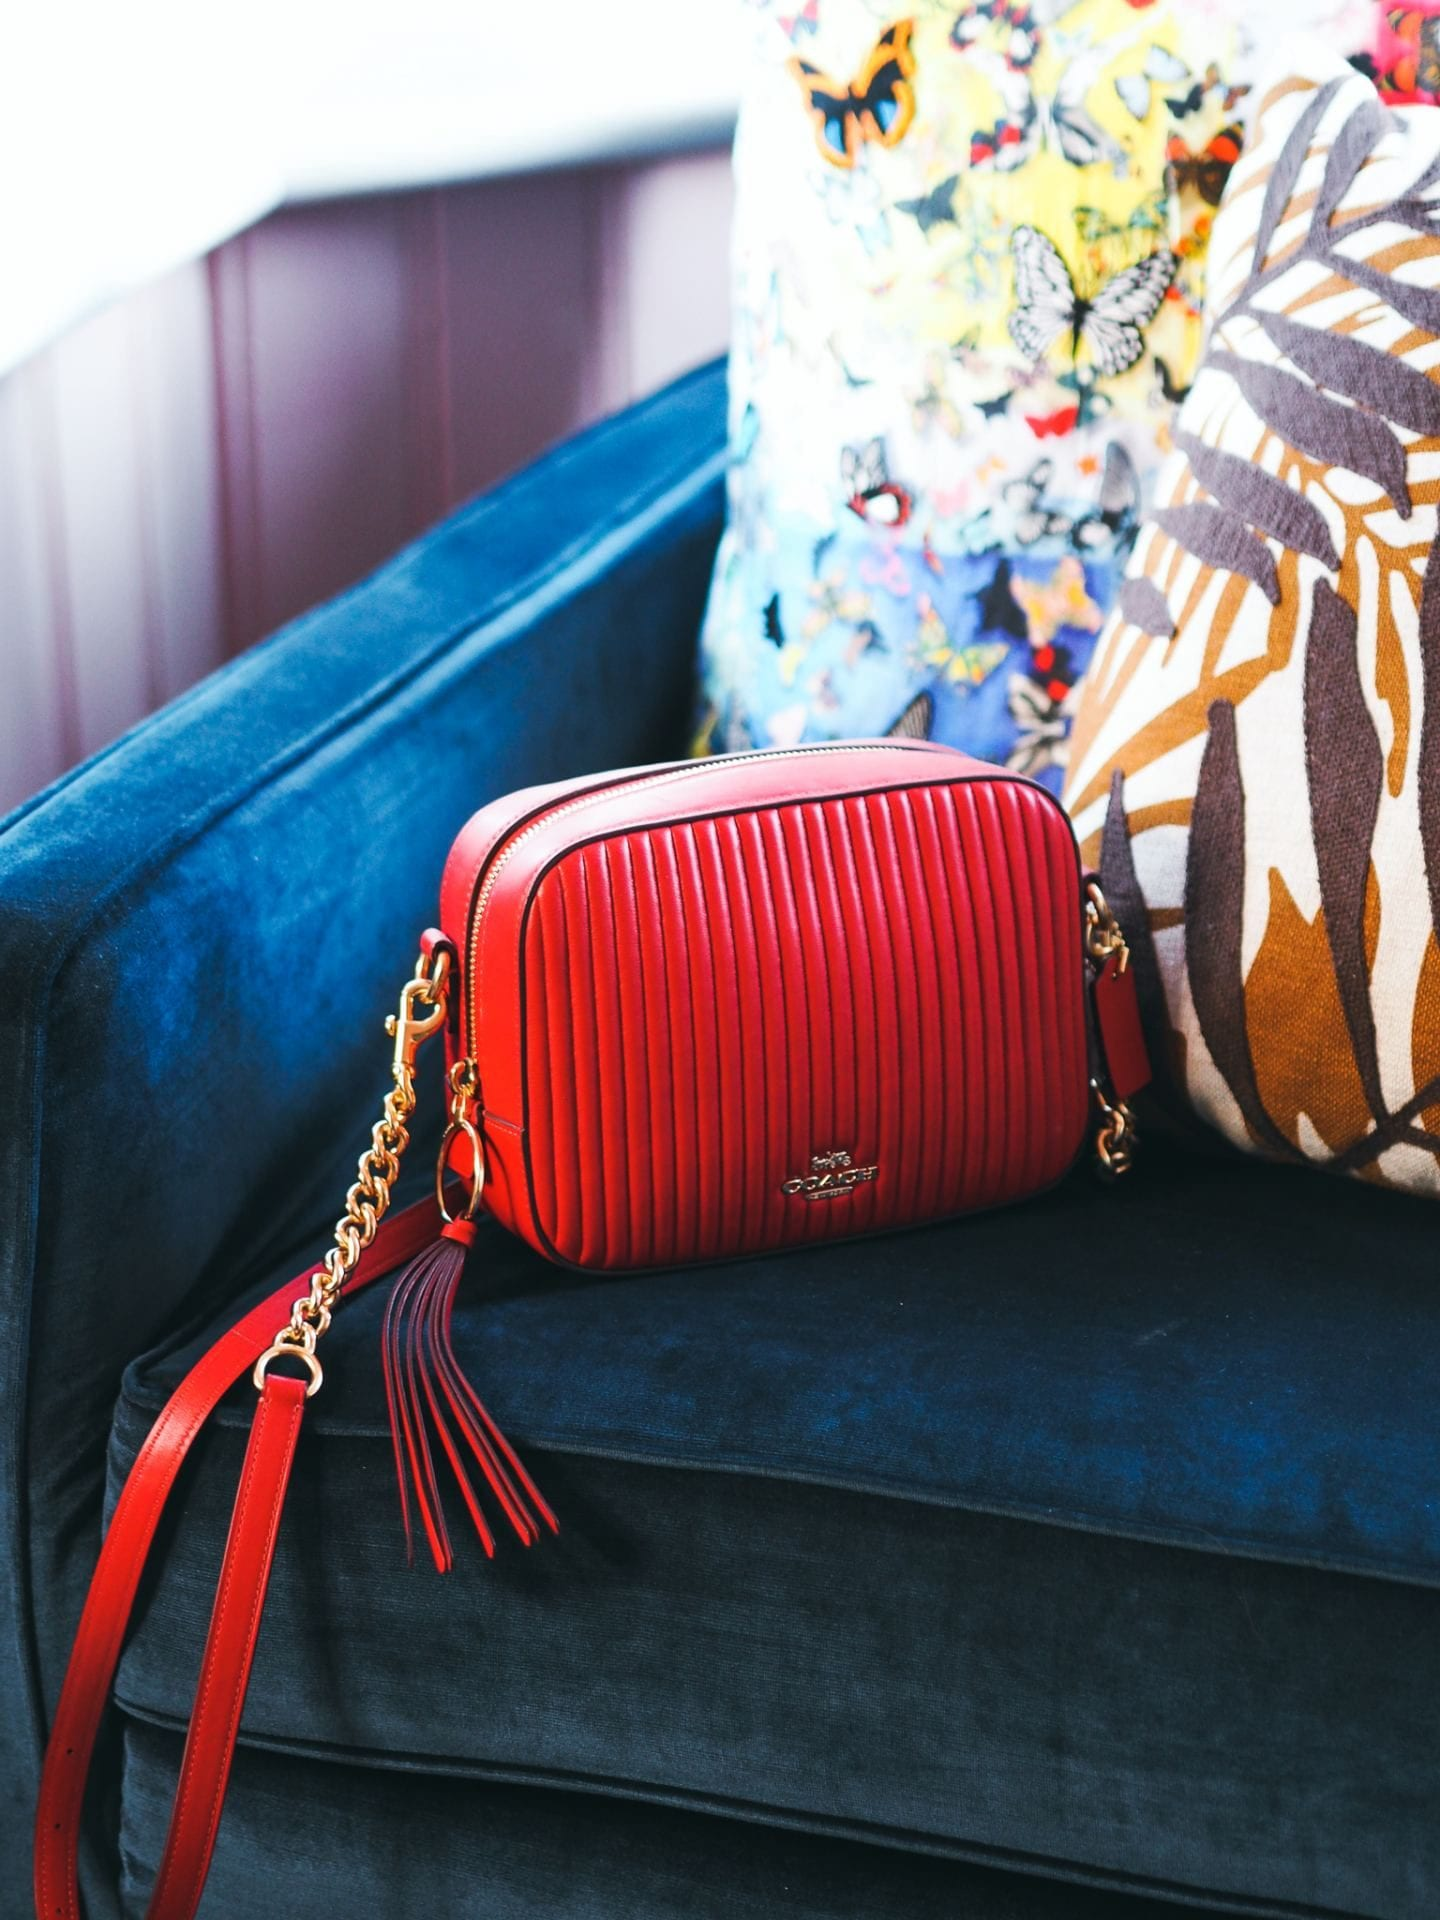 Coach Camera Bag handbag red leather quilted review fashion for lunch